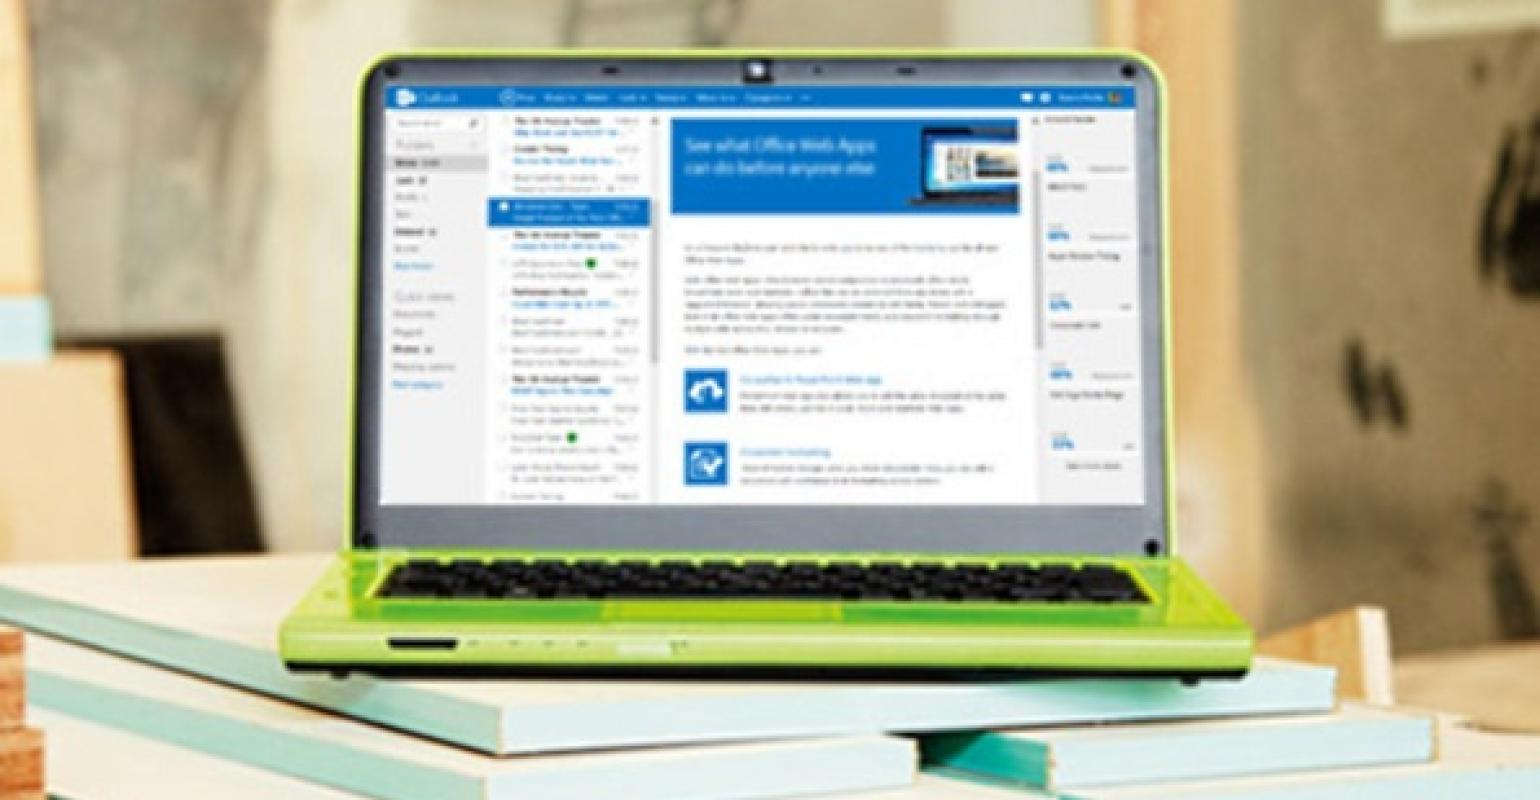 Enable and Use Two-Step Authentication with Your Microsoft